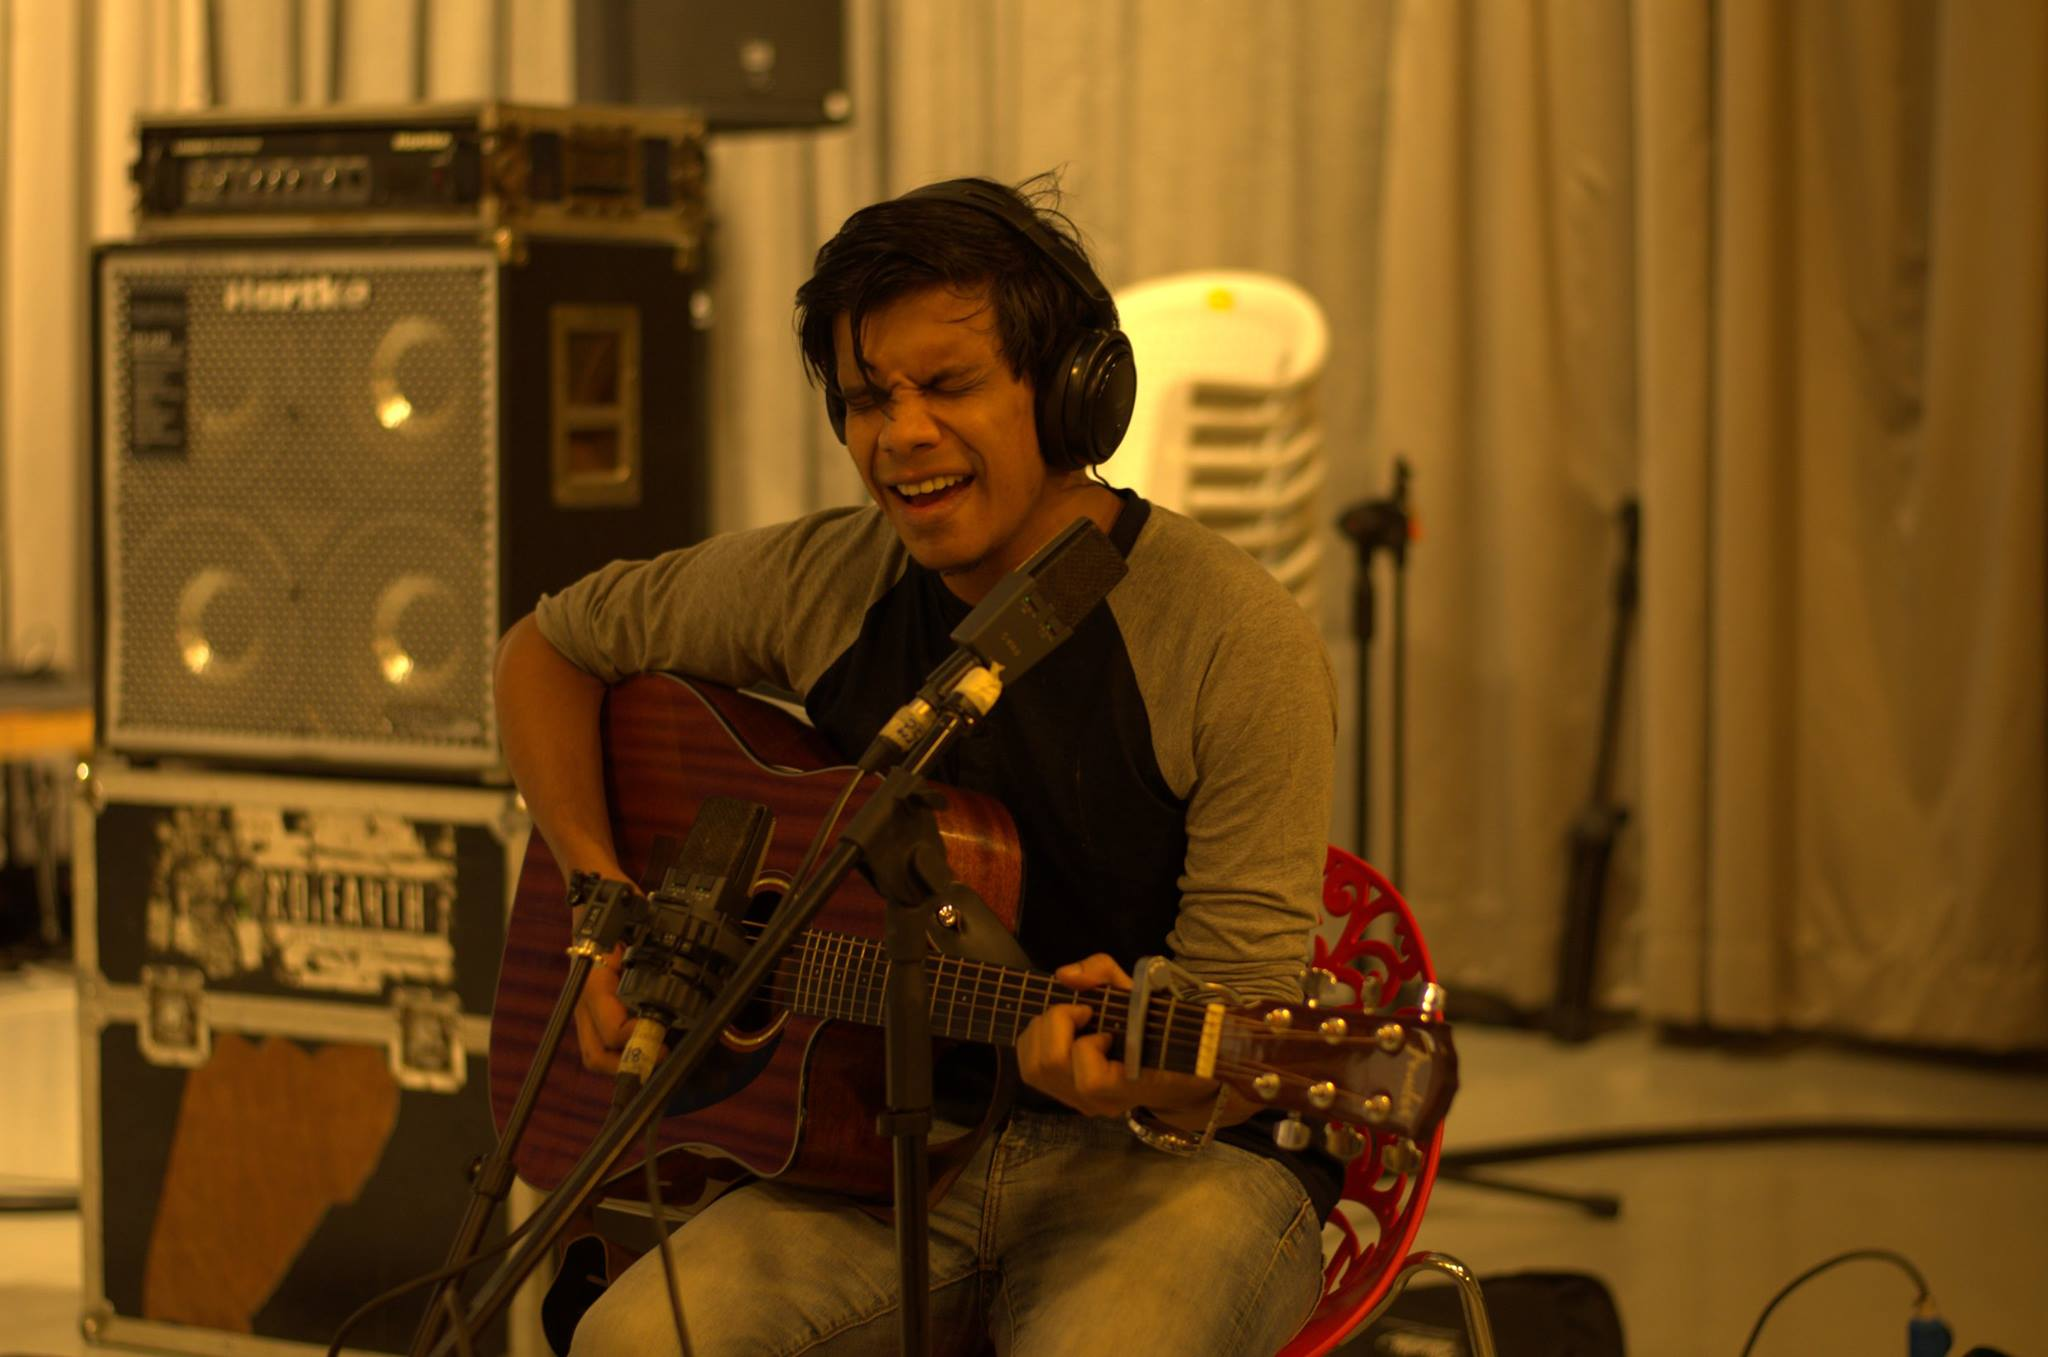 Bjorn Surrao recording at Indie100 2016